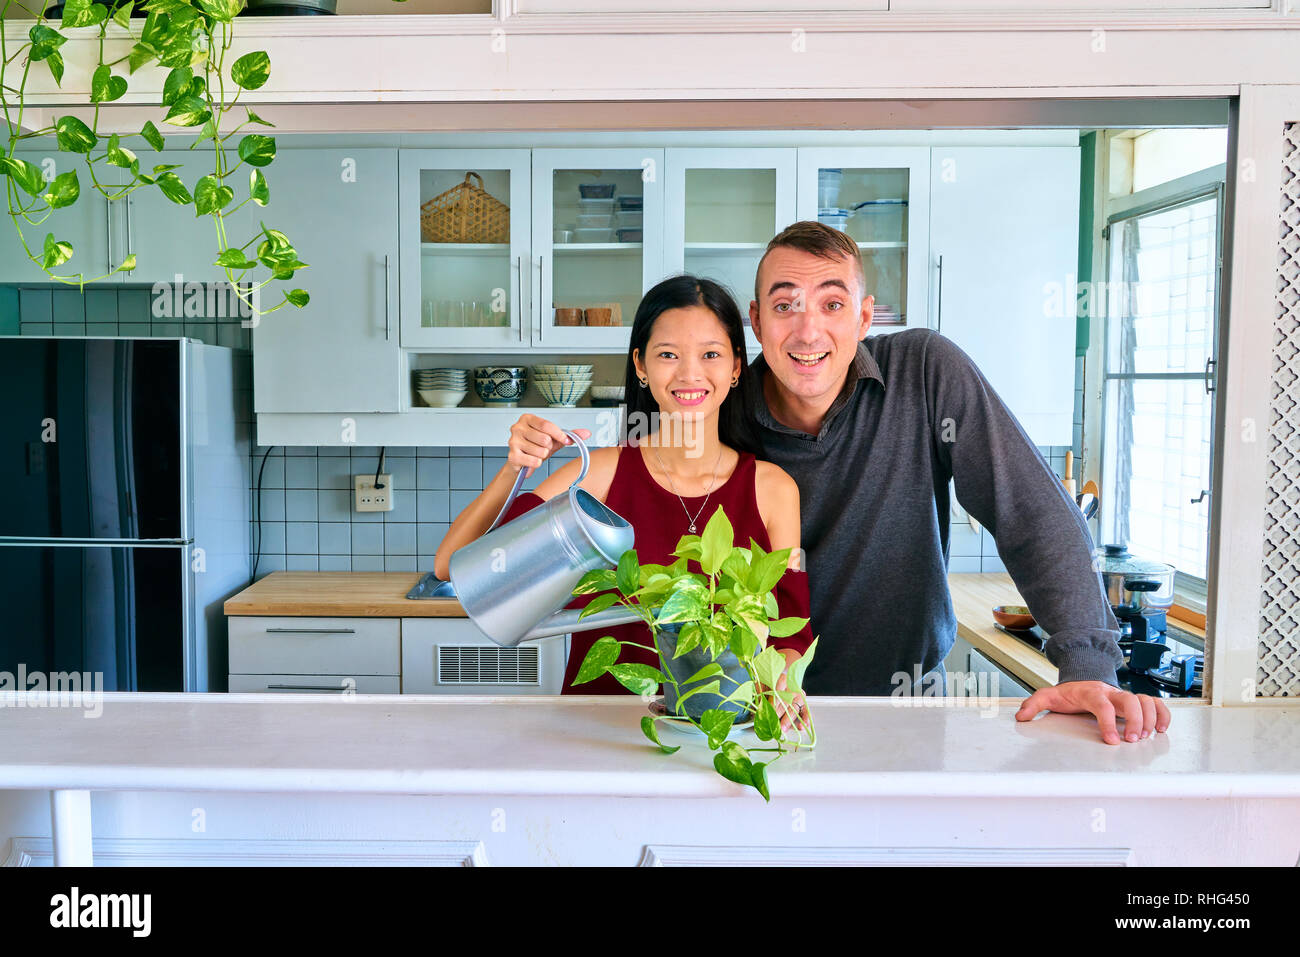 Lovely couple posing - watering plants, smiling and looking at camera - Stock Image